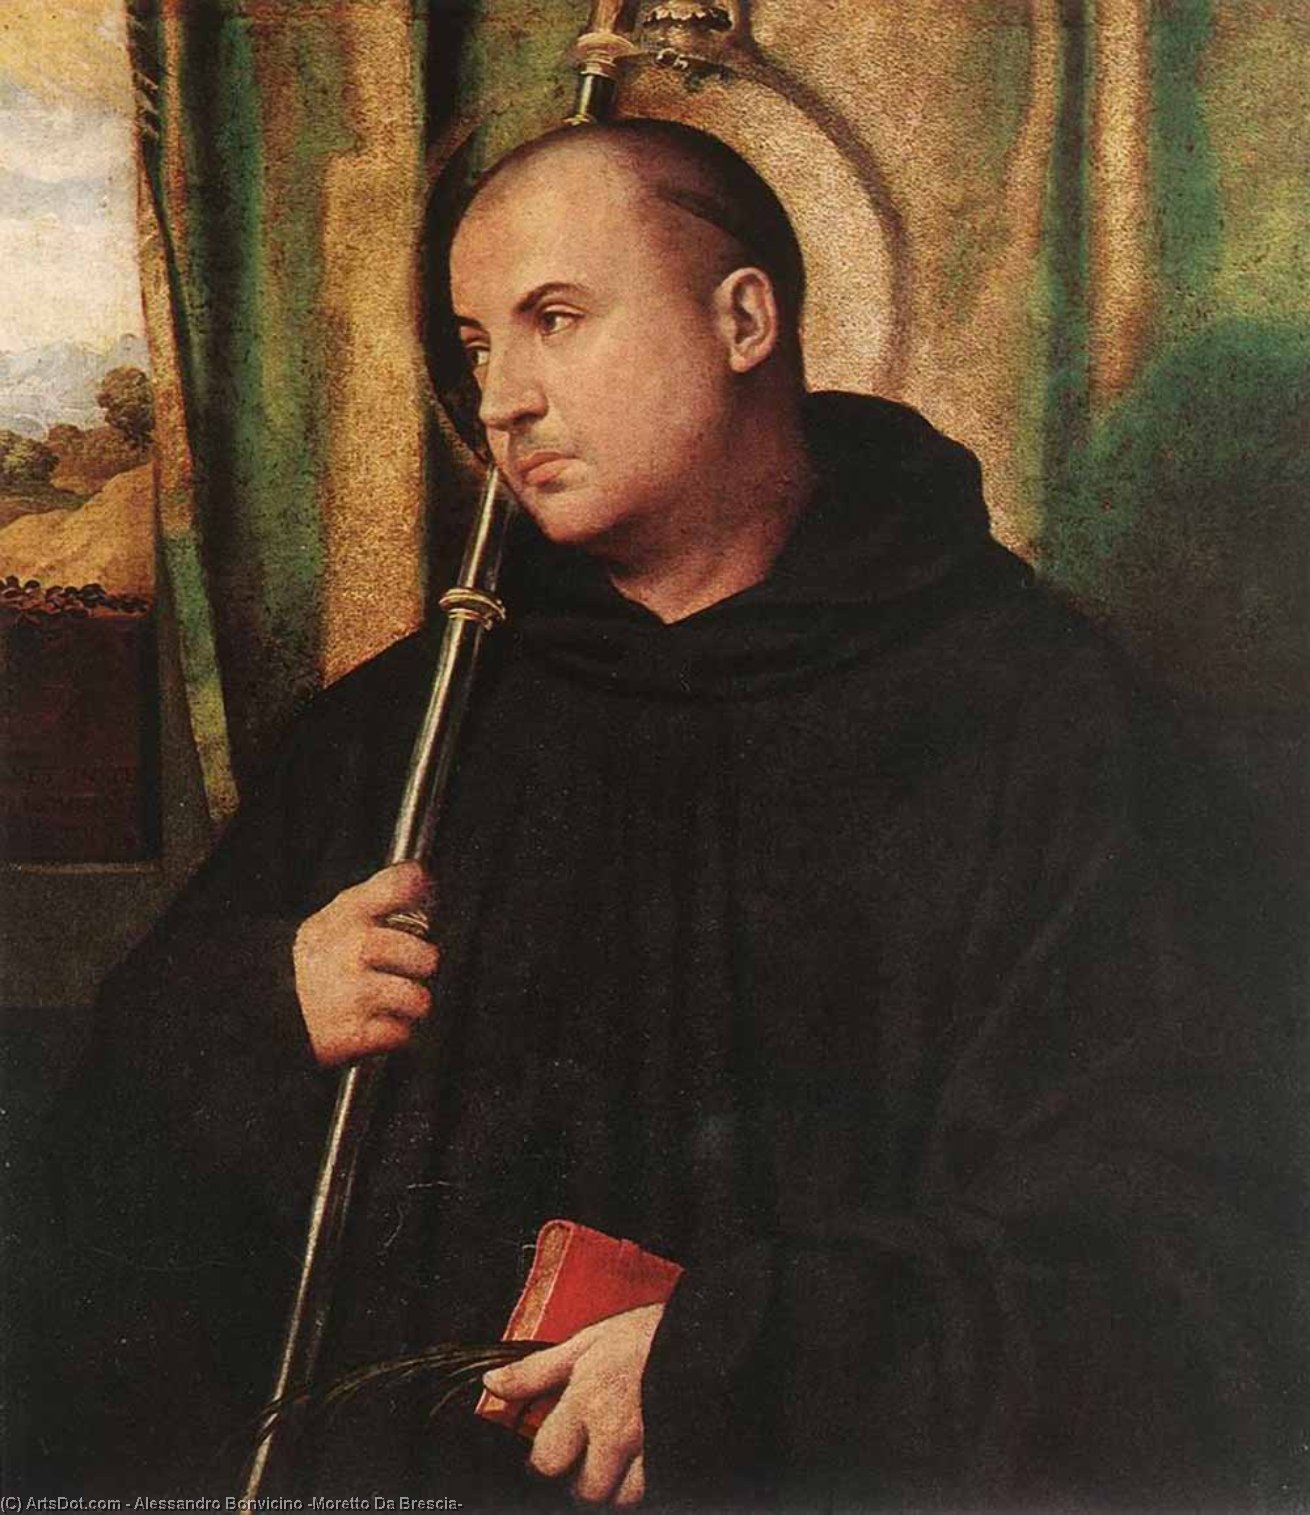 Buy Museum Art Reproductions : A Saint Monk, 1530 by Alessandro Bonvicino (Moretto Da Brescia) (1498-1554, Italy) | ArtsDot.com